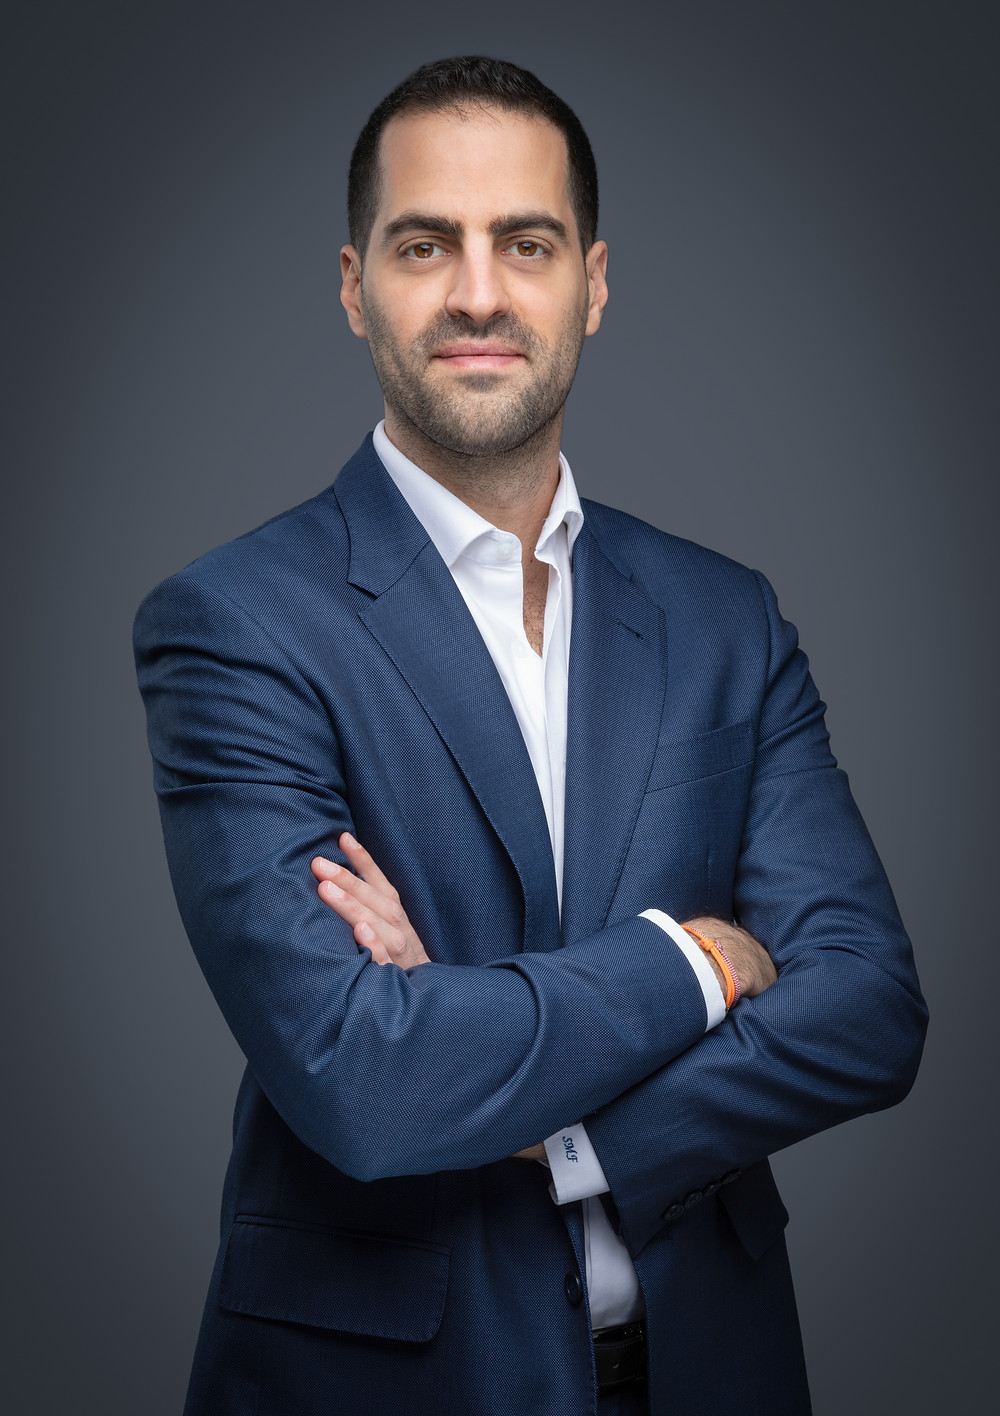 A Business man posing for a corporate headshot